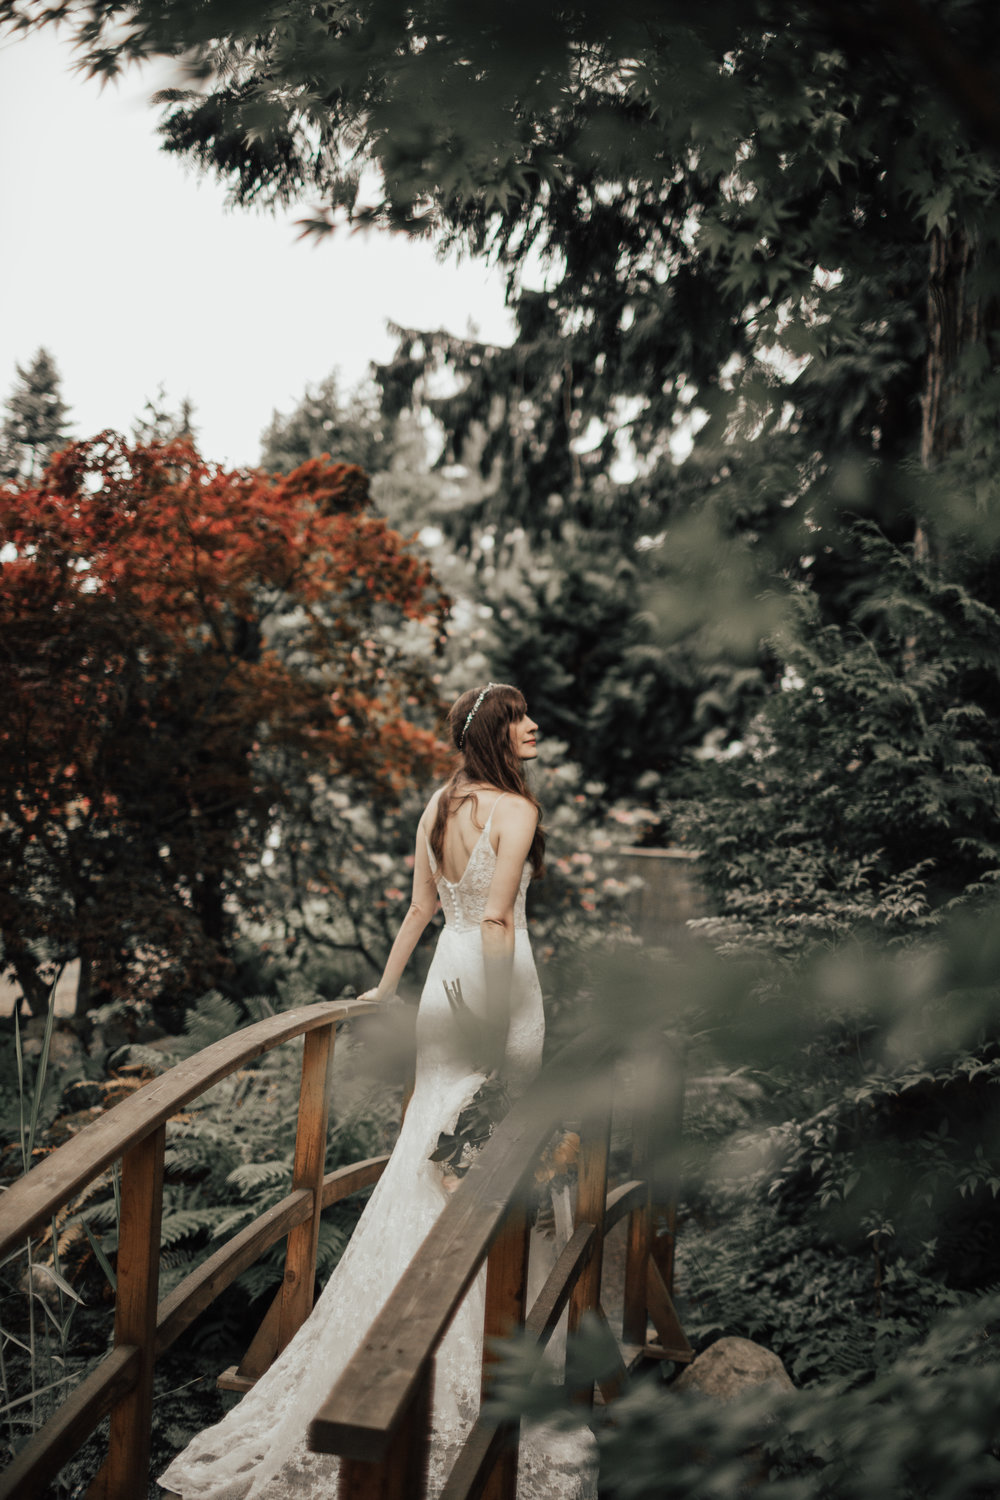 PNW-elopement-wedding-engagement-olympic national park-port angeles-hurricane ridge-lake crescent-kayla dawn photography- photographer-photography-kayladawnphoto-115.jpg